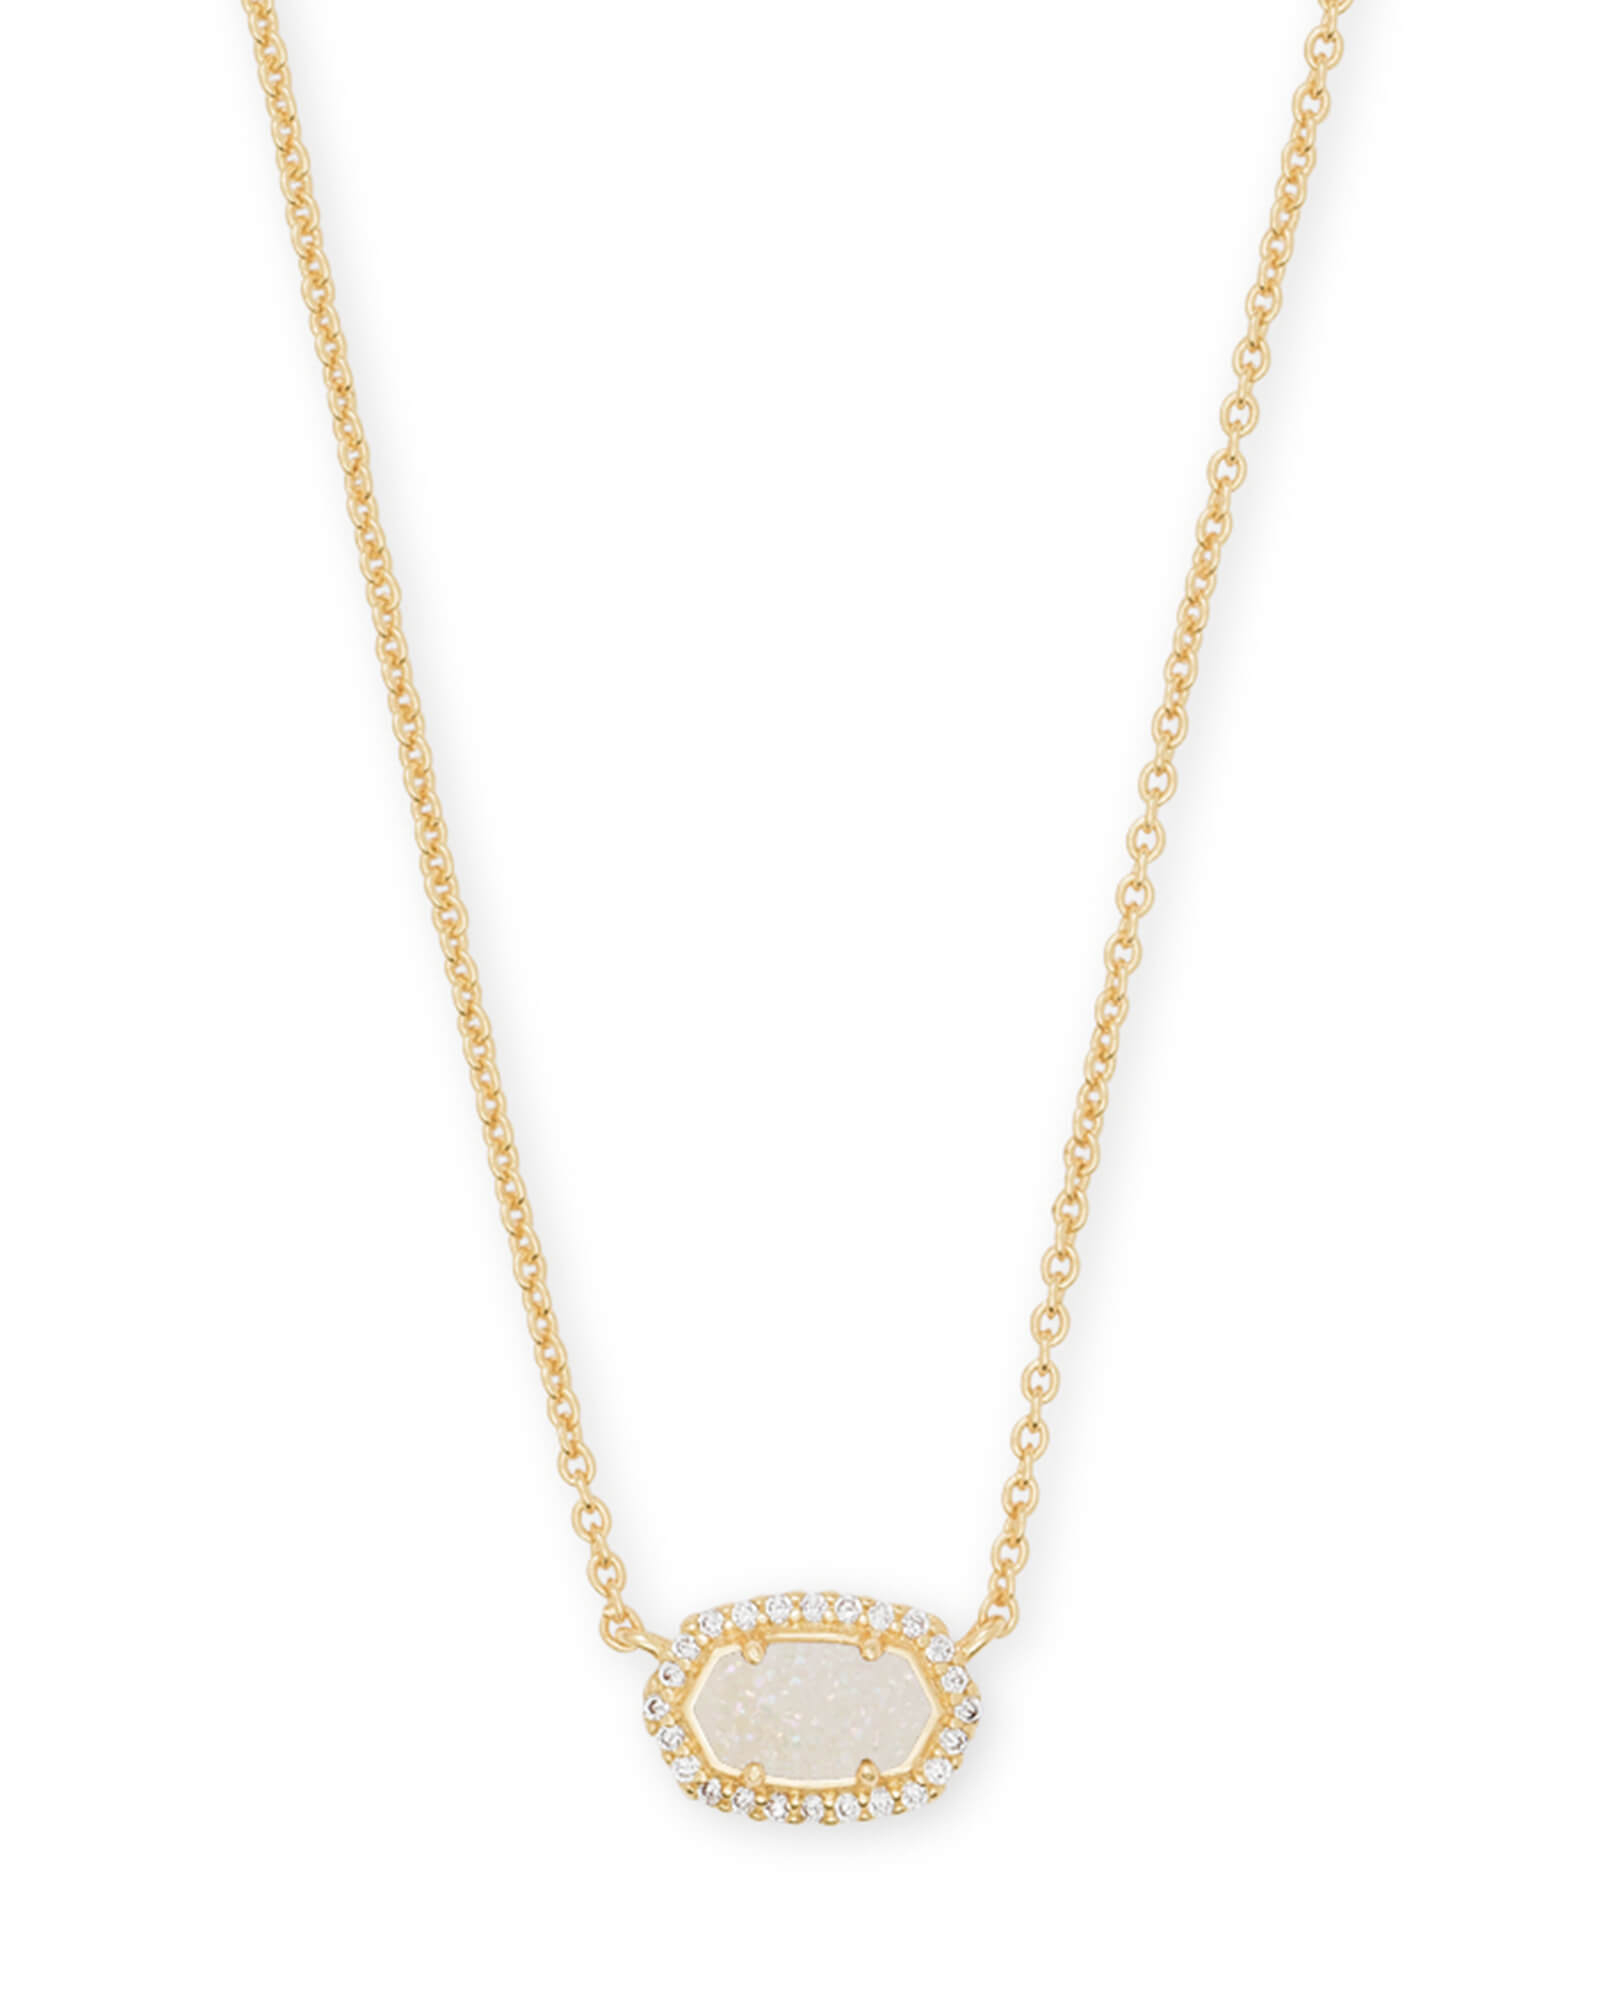 Chelsea Gold Pendant Necklace In Iridescent Drusy | Kendra Scott Inside 2020 Square Sparkle Halo Pendant Necklaces (Gallery 7 of 25)